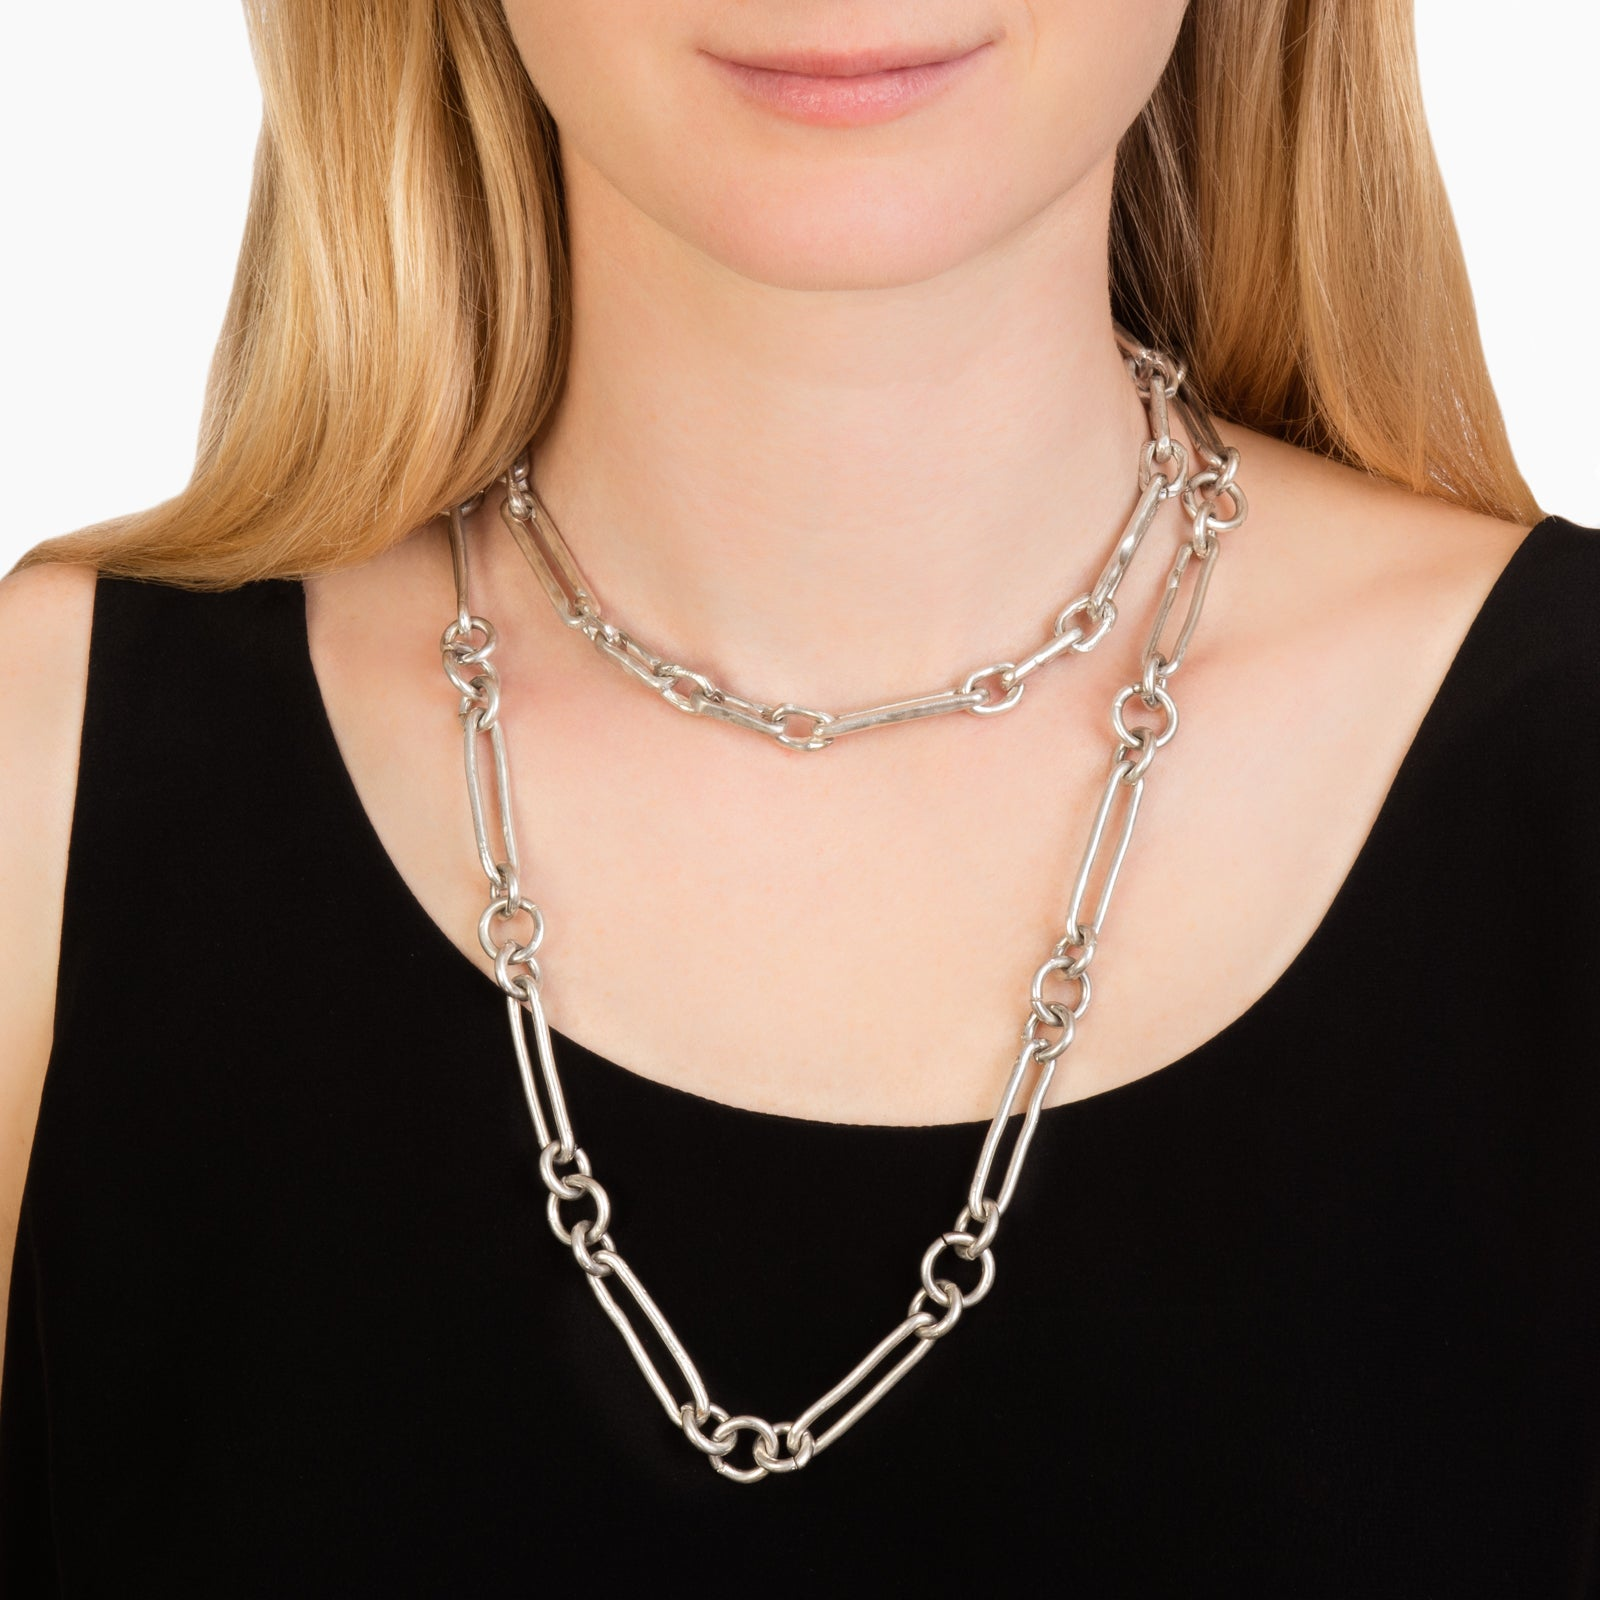 James Colarusso Alternating Link Chain - Silver - Necklaces - Broken English Jewelry